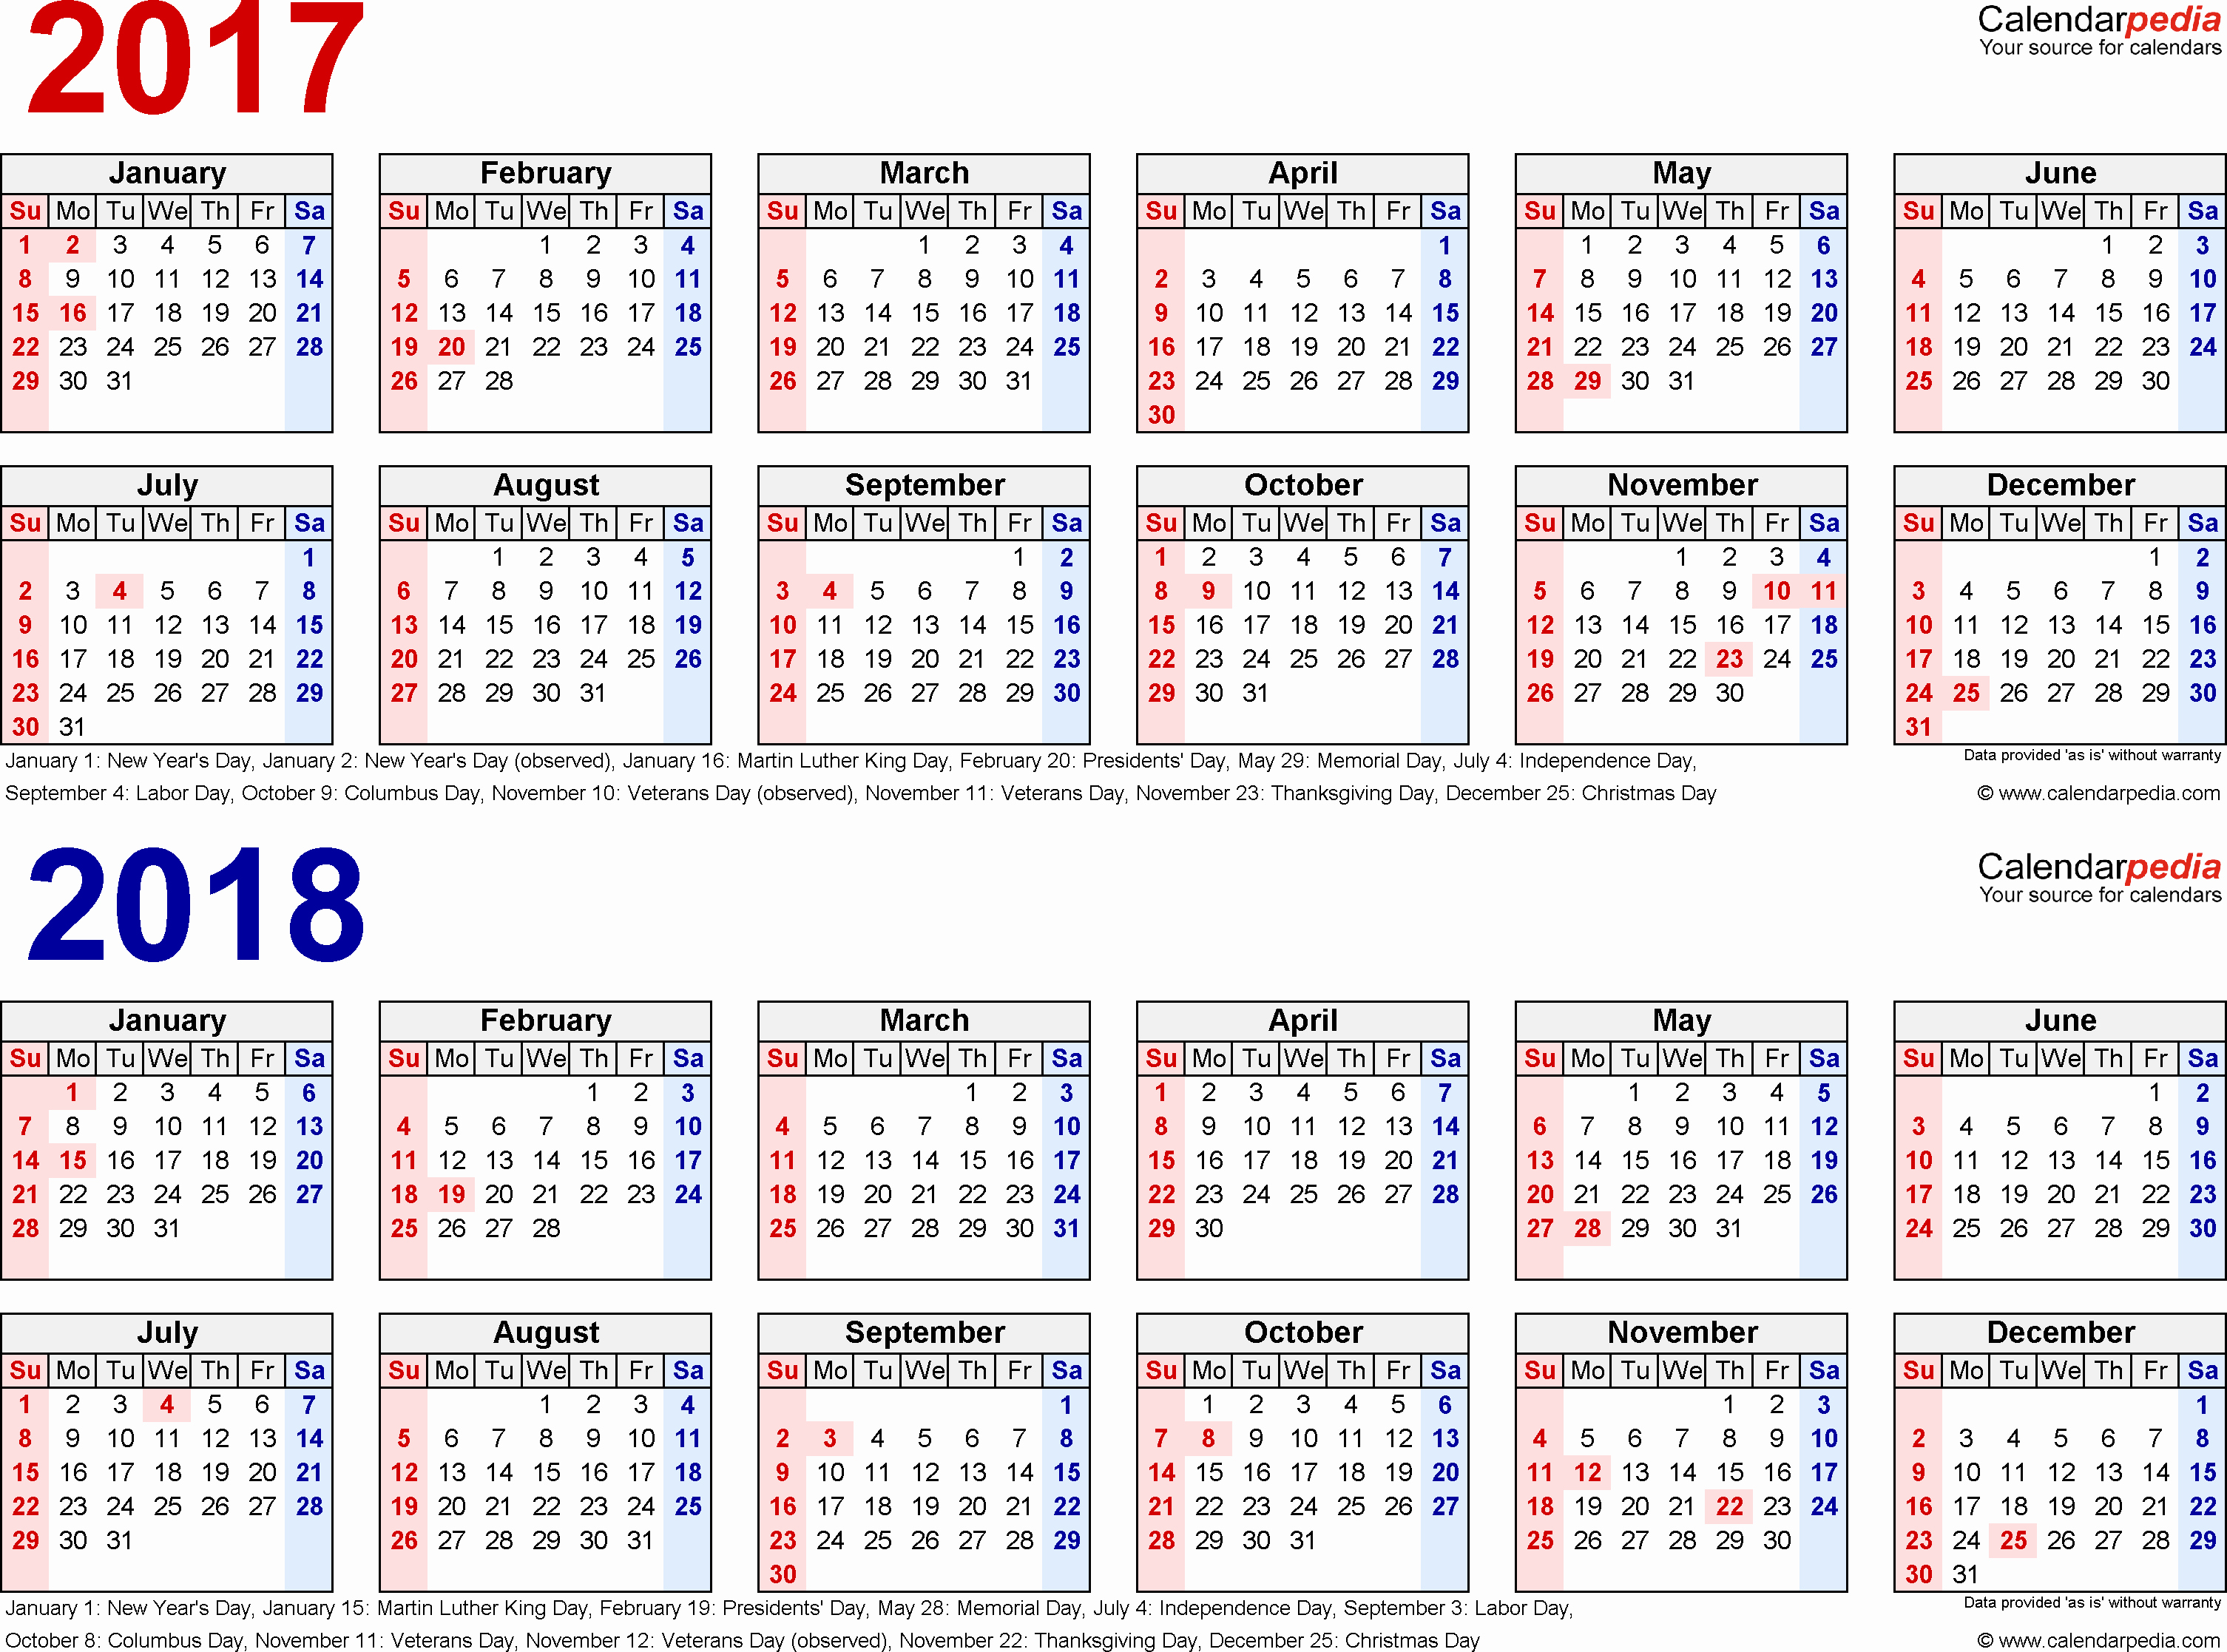 Free Yearly Calendar 2017 Elegant 2017 2018 Calendar Free Printable Two Year Excel Calendars